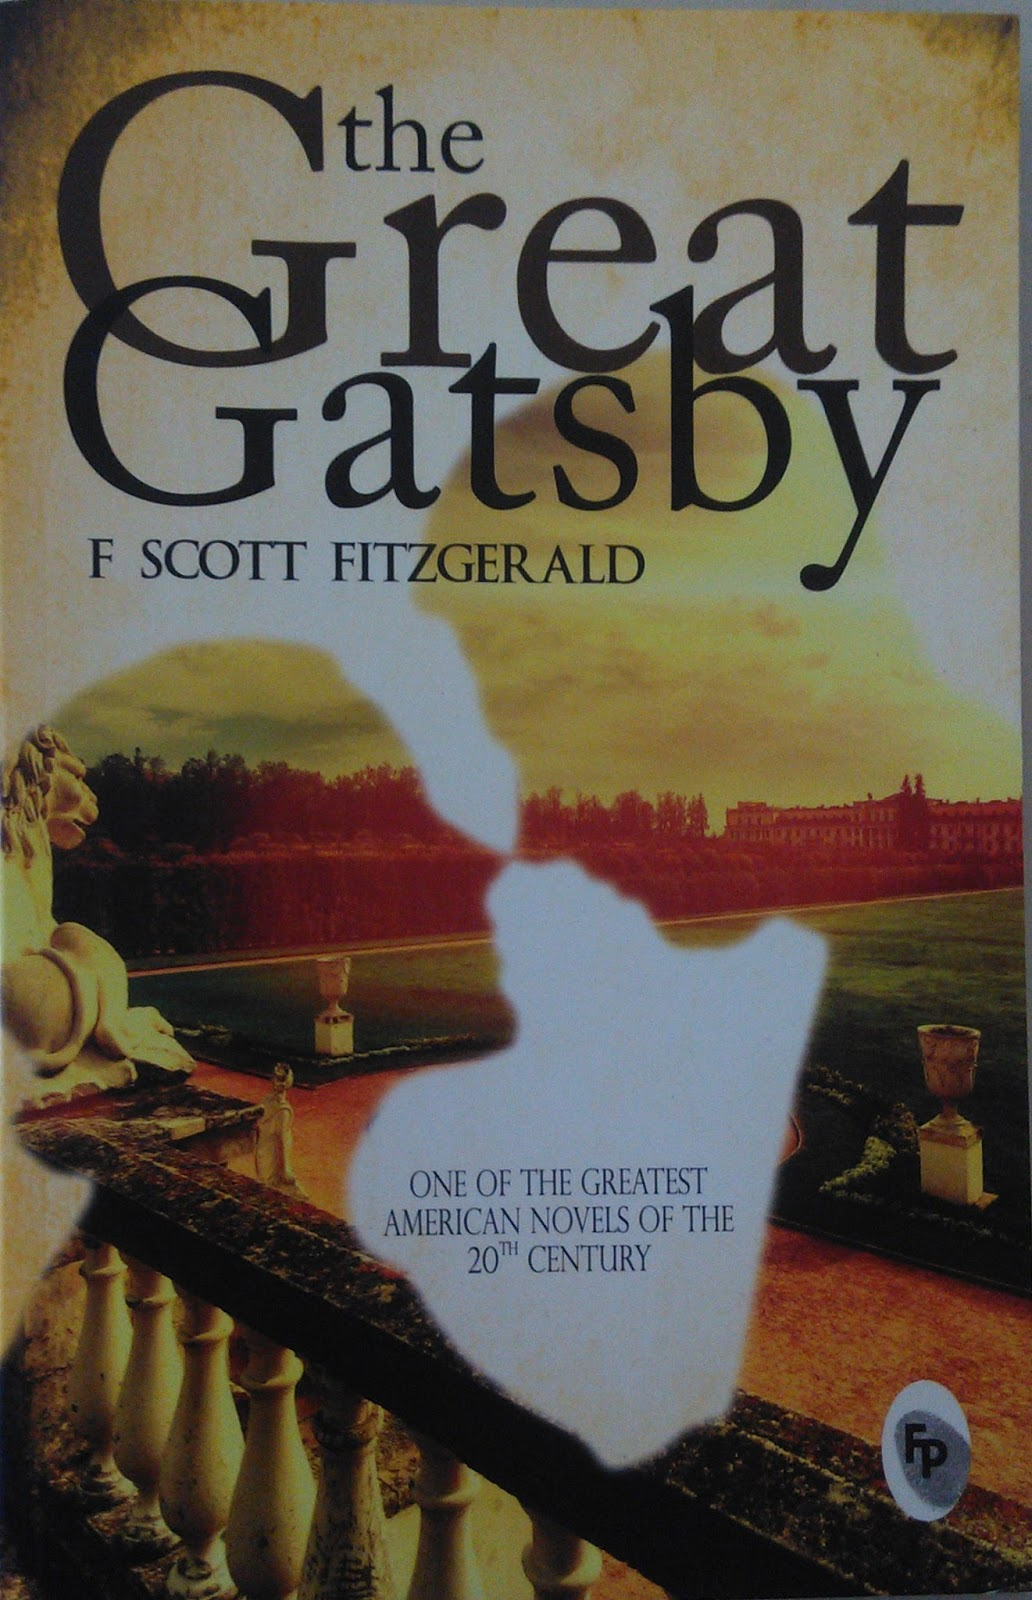 The Great Gatsby by F Scott Fitzgerald - review